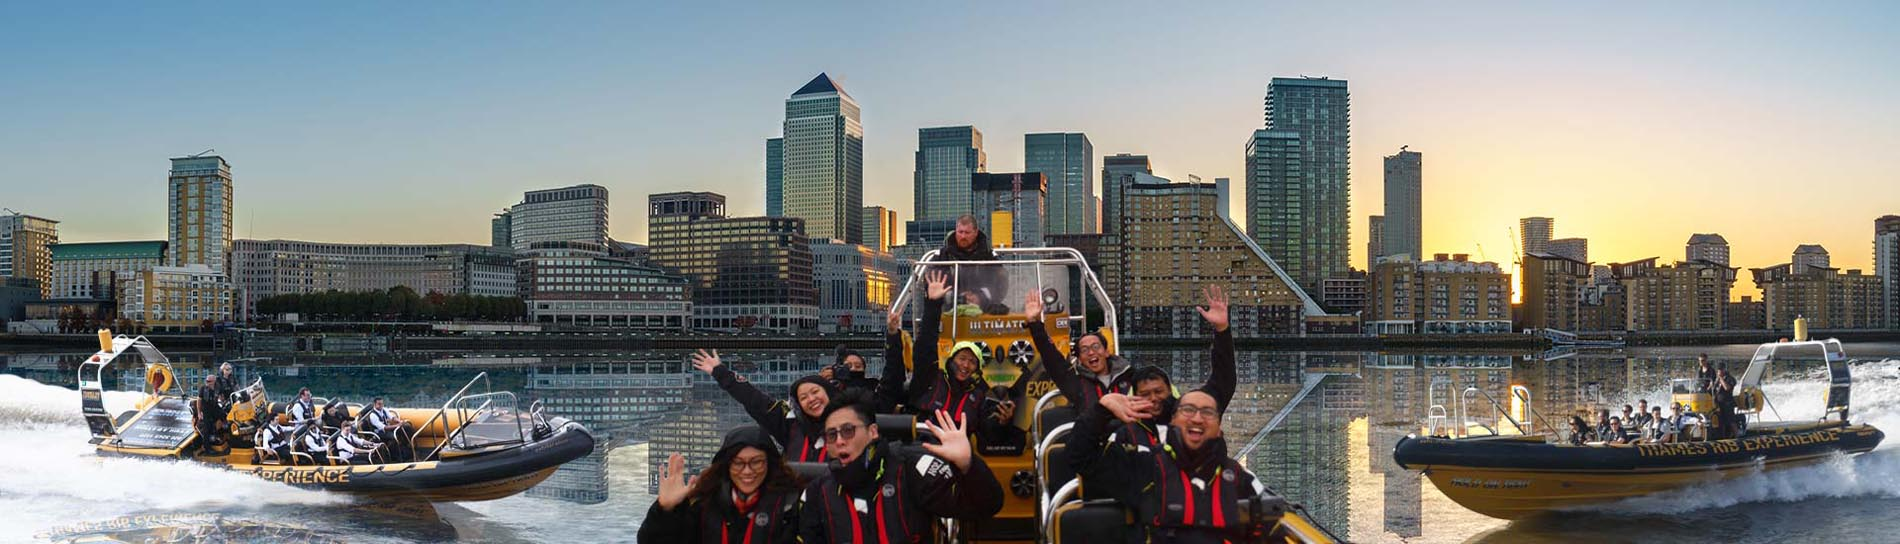 Corporate day out London